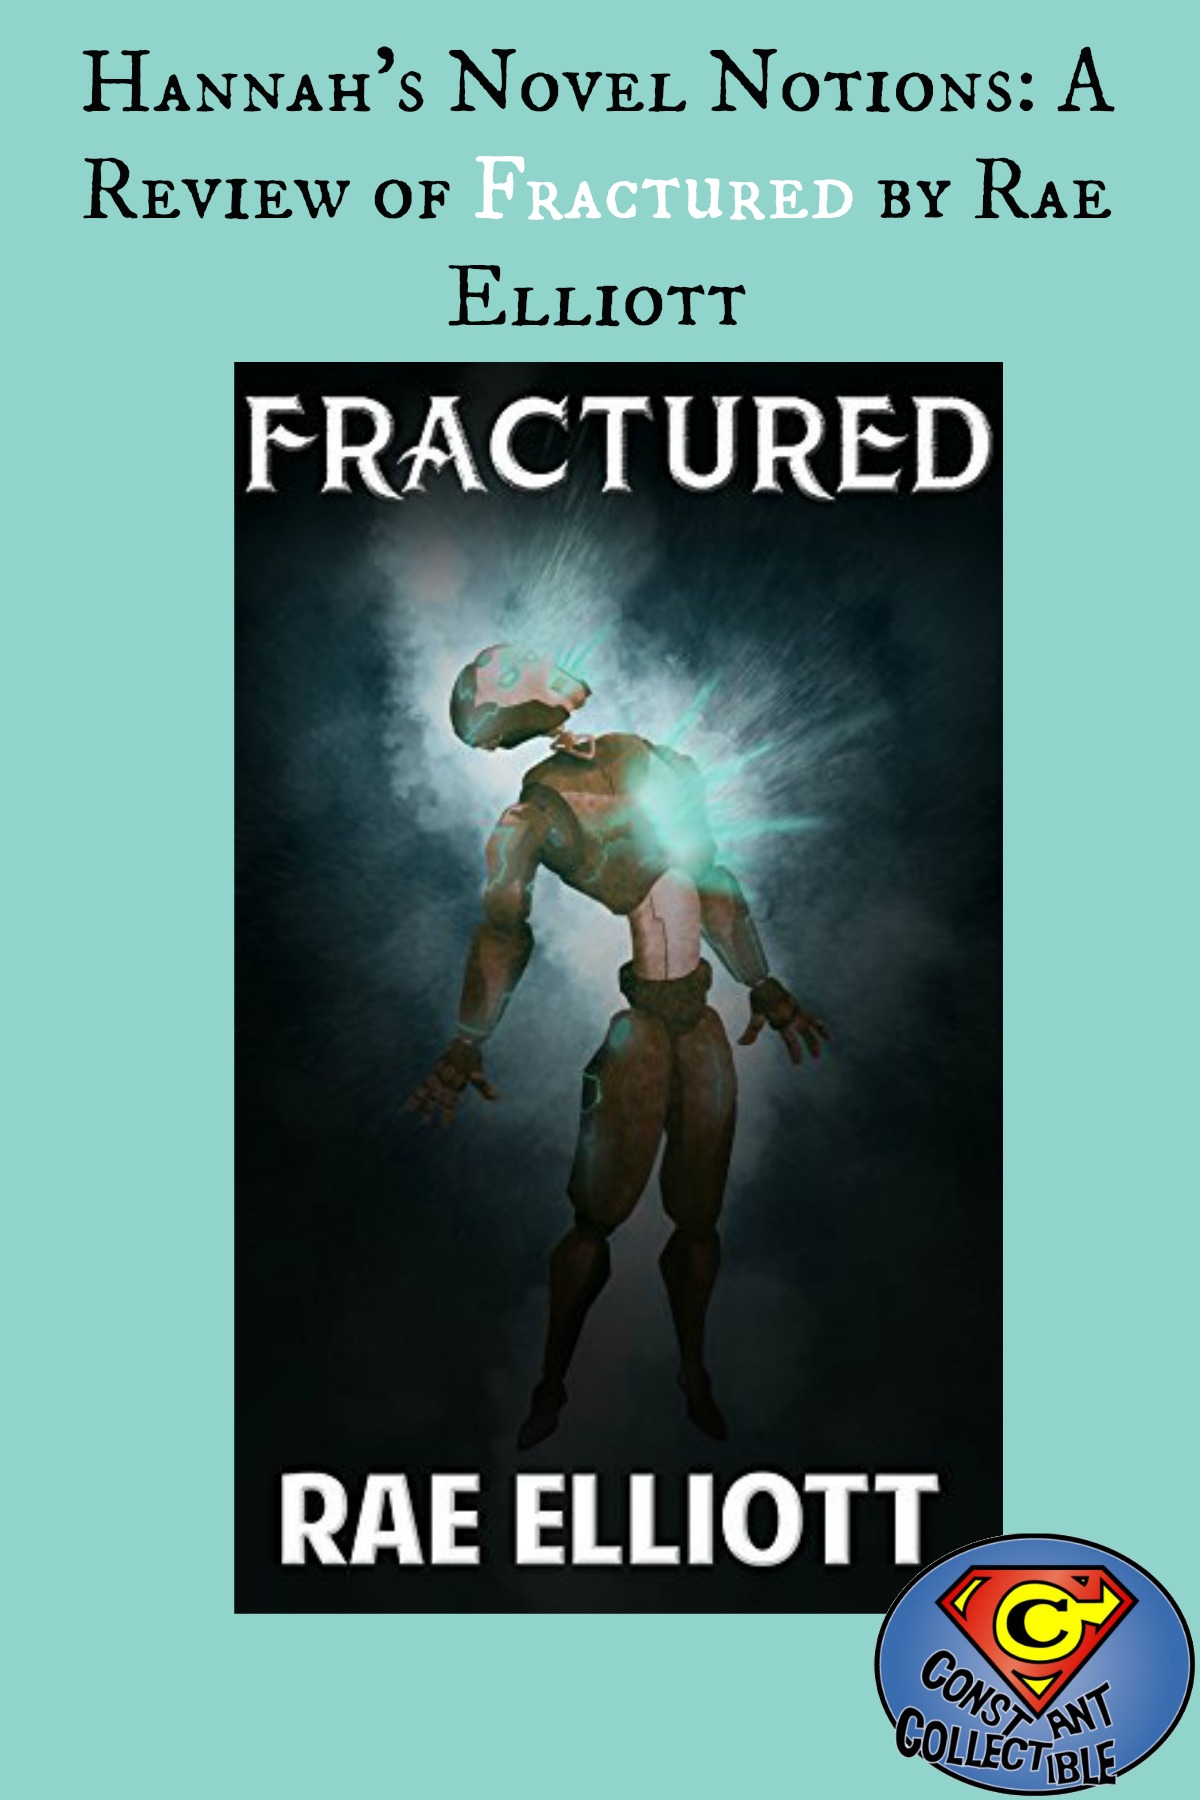 Hannah's Novel Notions: A Review of Fractured by Rae Elliott